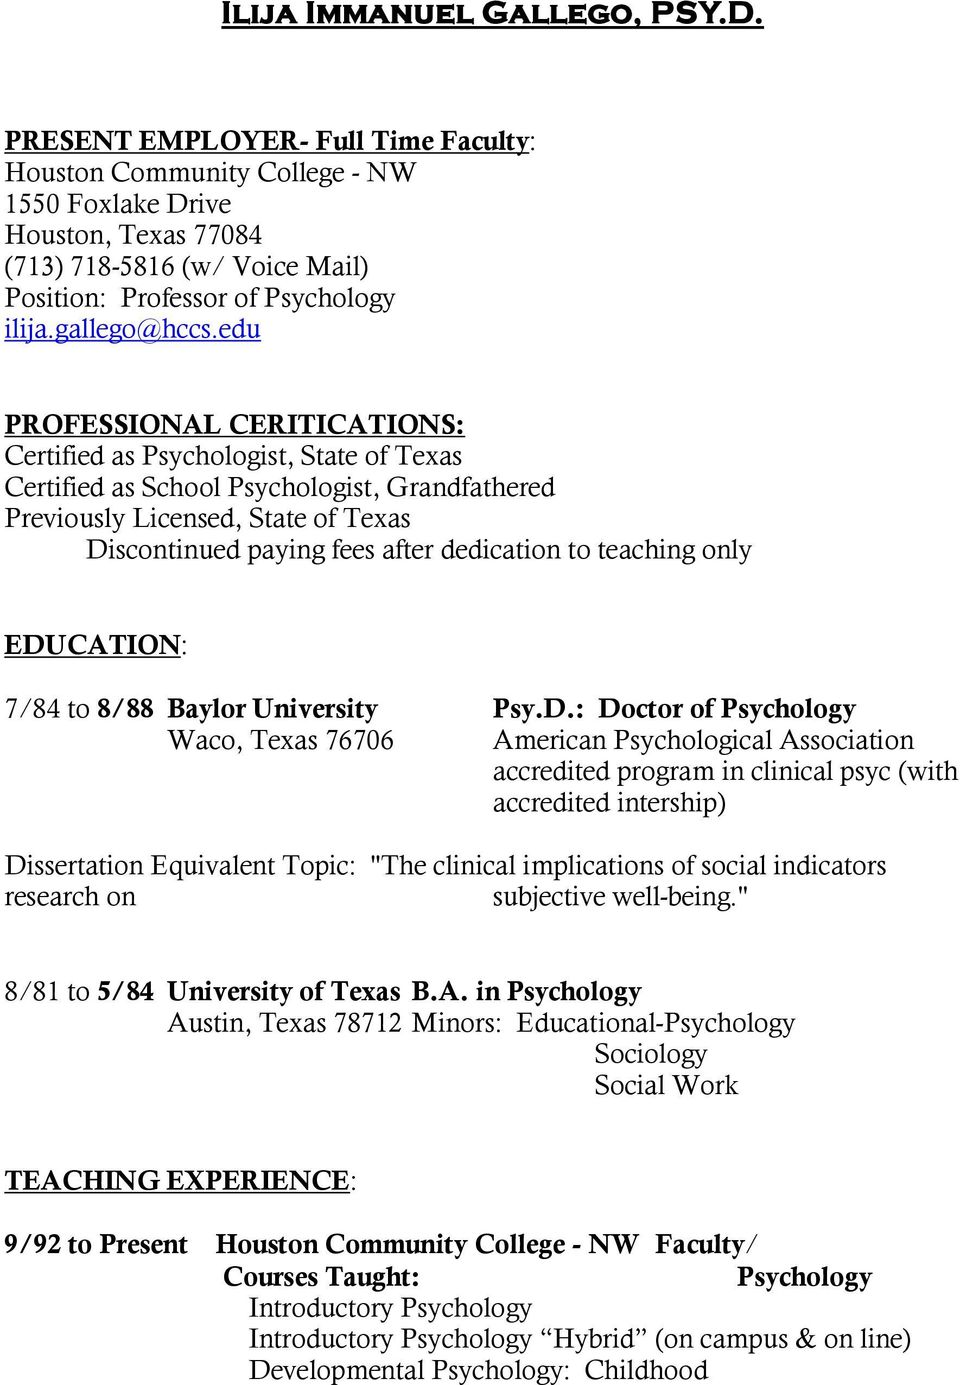 Popular dissertation abstract writer services